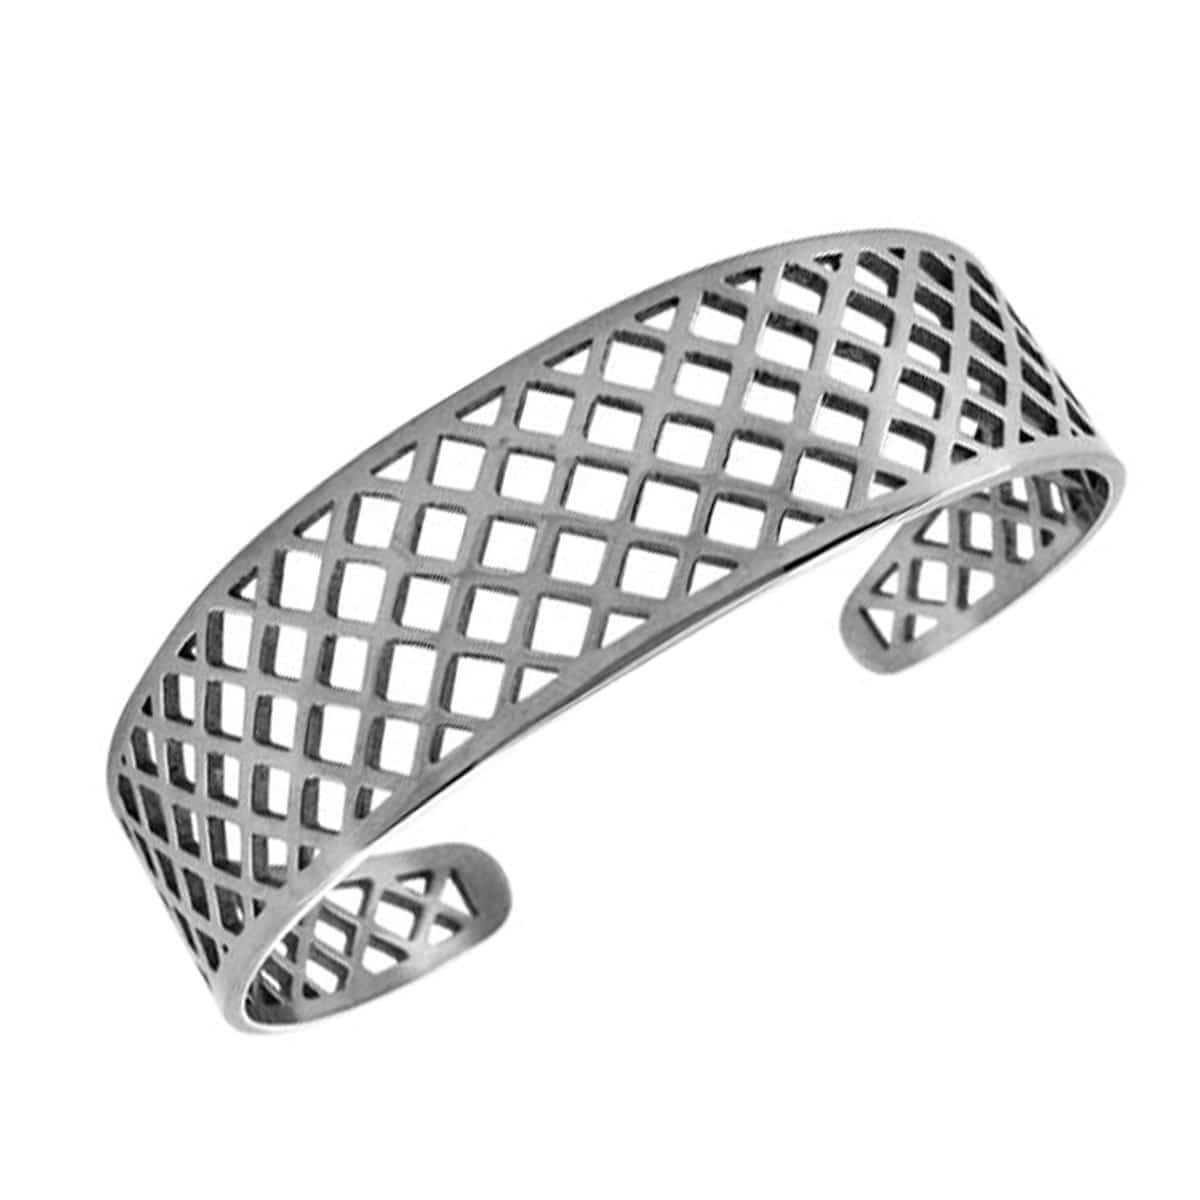 Silver Stainless Steel Basket Weave Cut-Out Cuff Kadaa